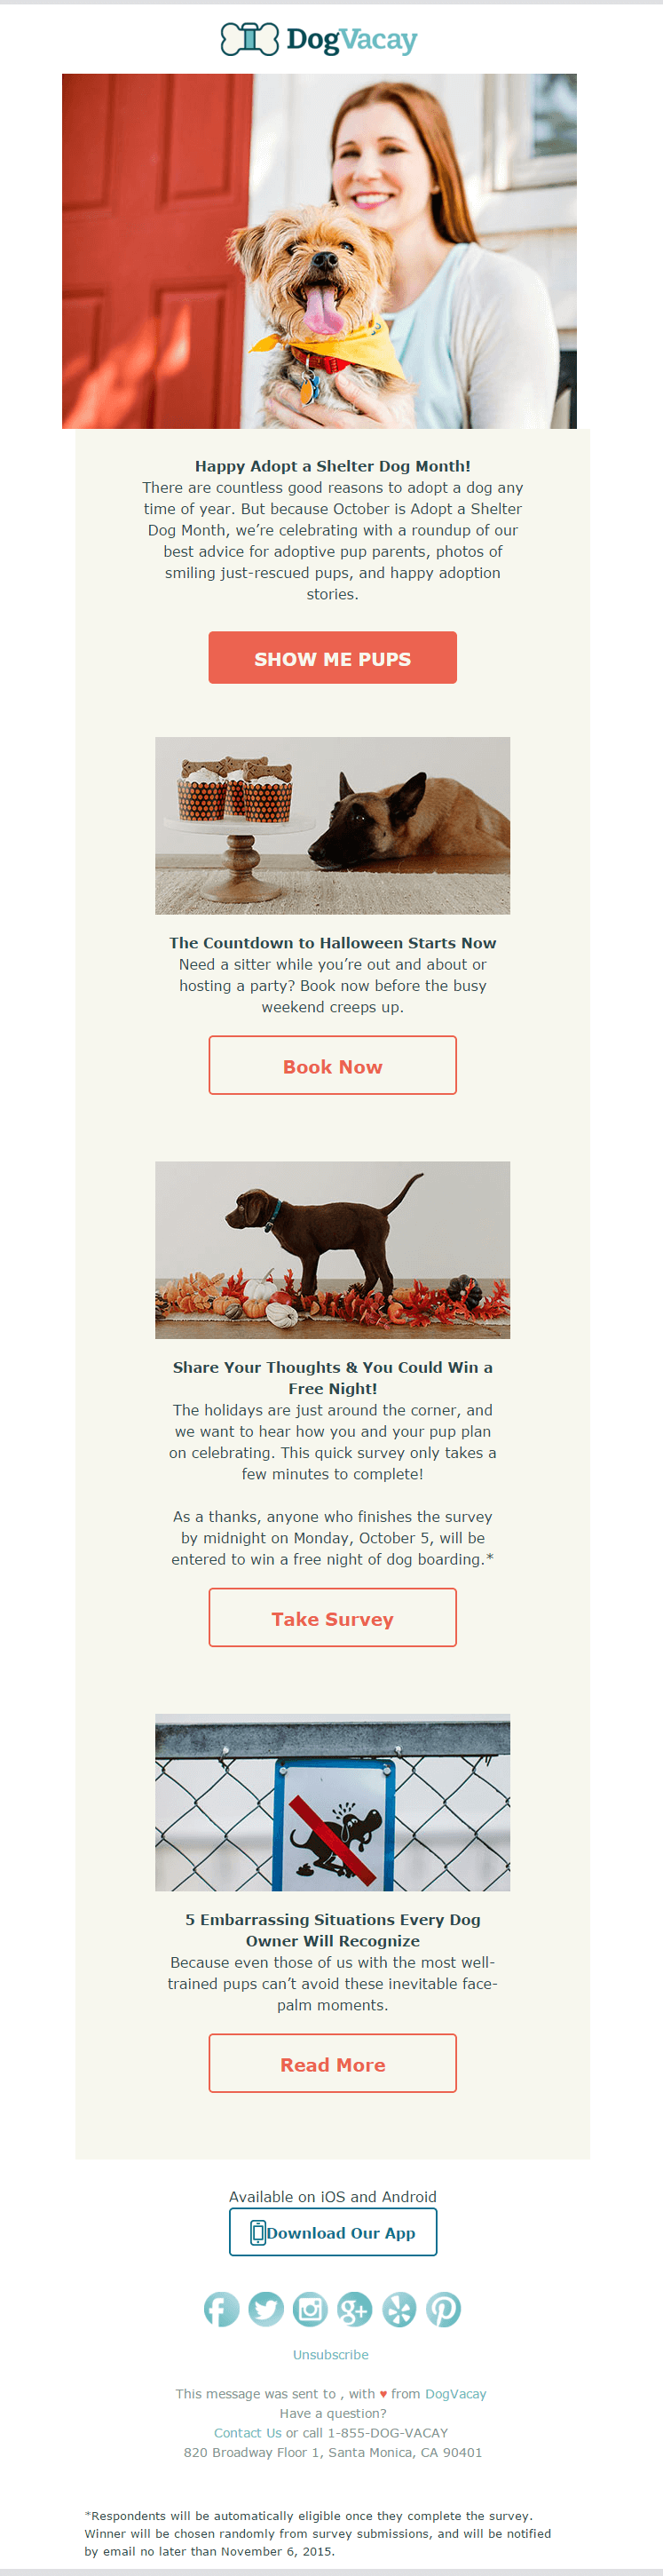 Email inspiration- Dogvacay (Shared Economy space)